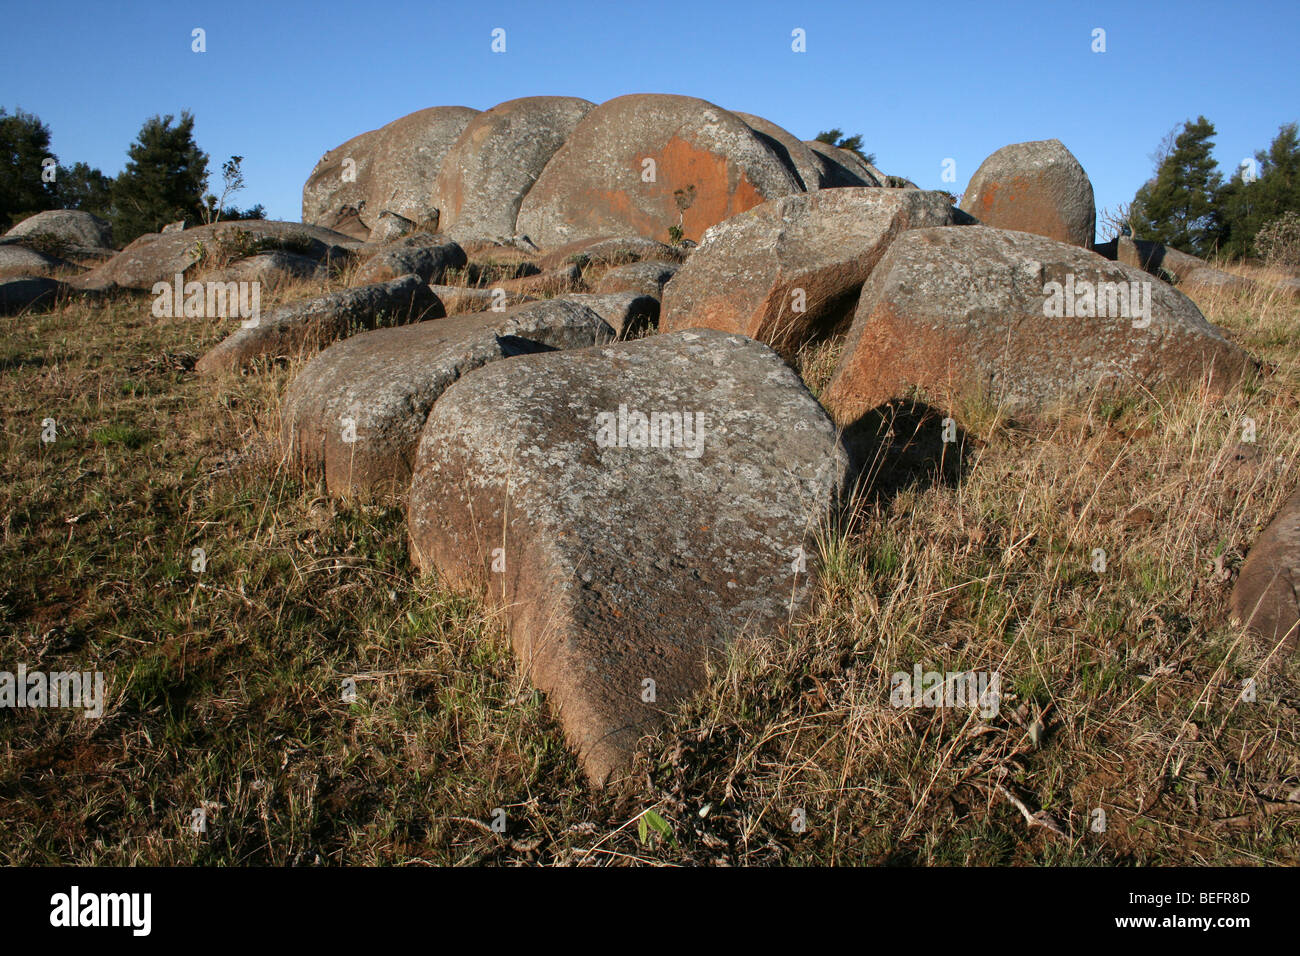 Lochiel Granite Boulders And Kopje In Malolotja National Park, Swaziland, Southern Africa - Stock Image